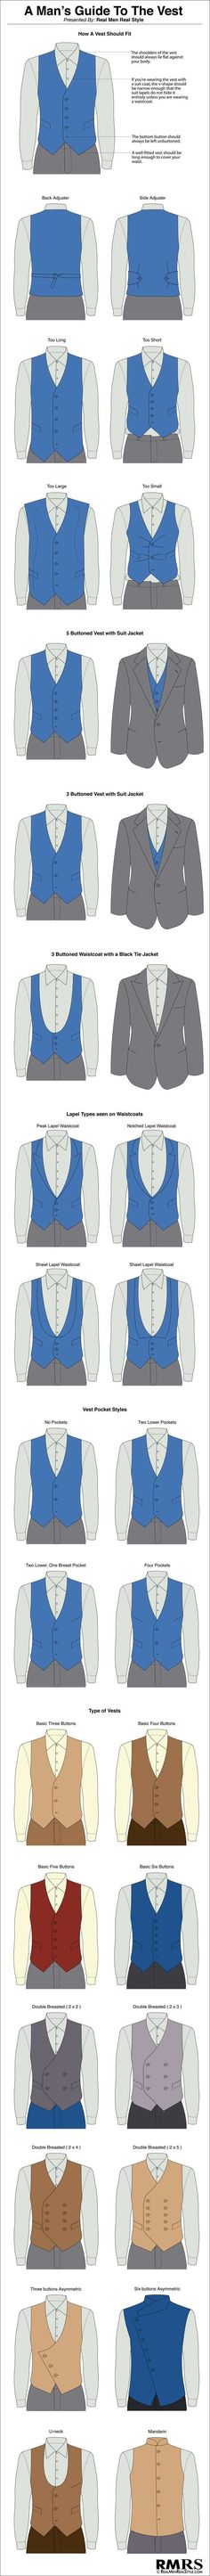 A guide to the perfect waist coat fit underneath your suit.